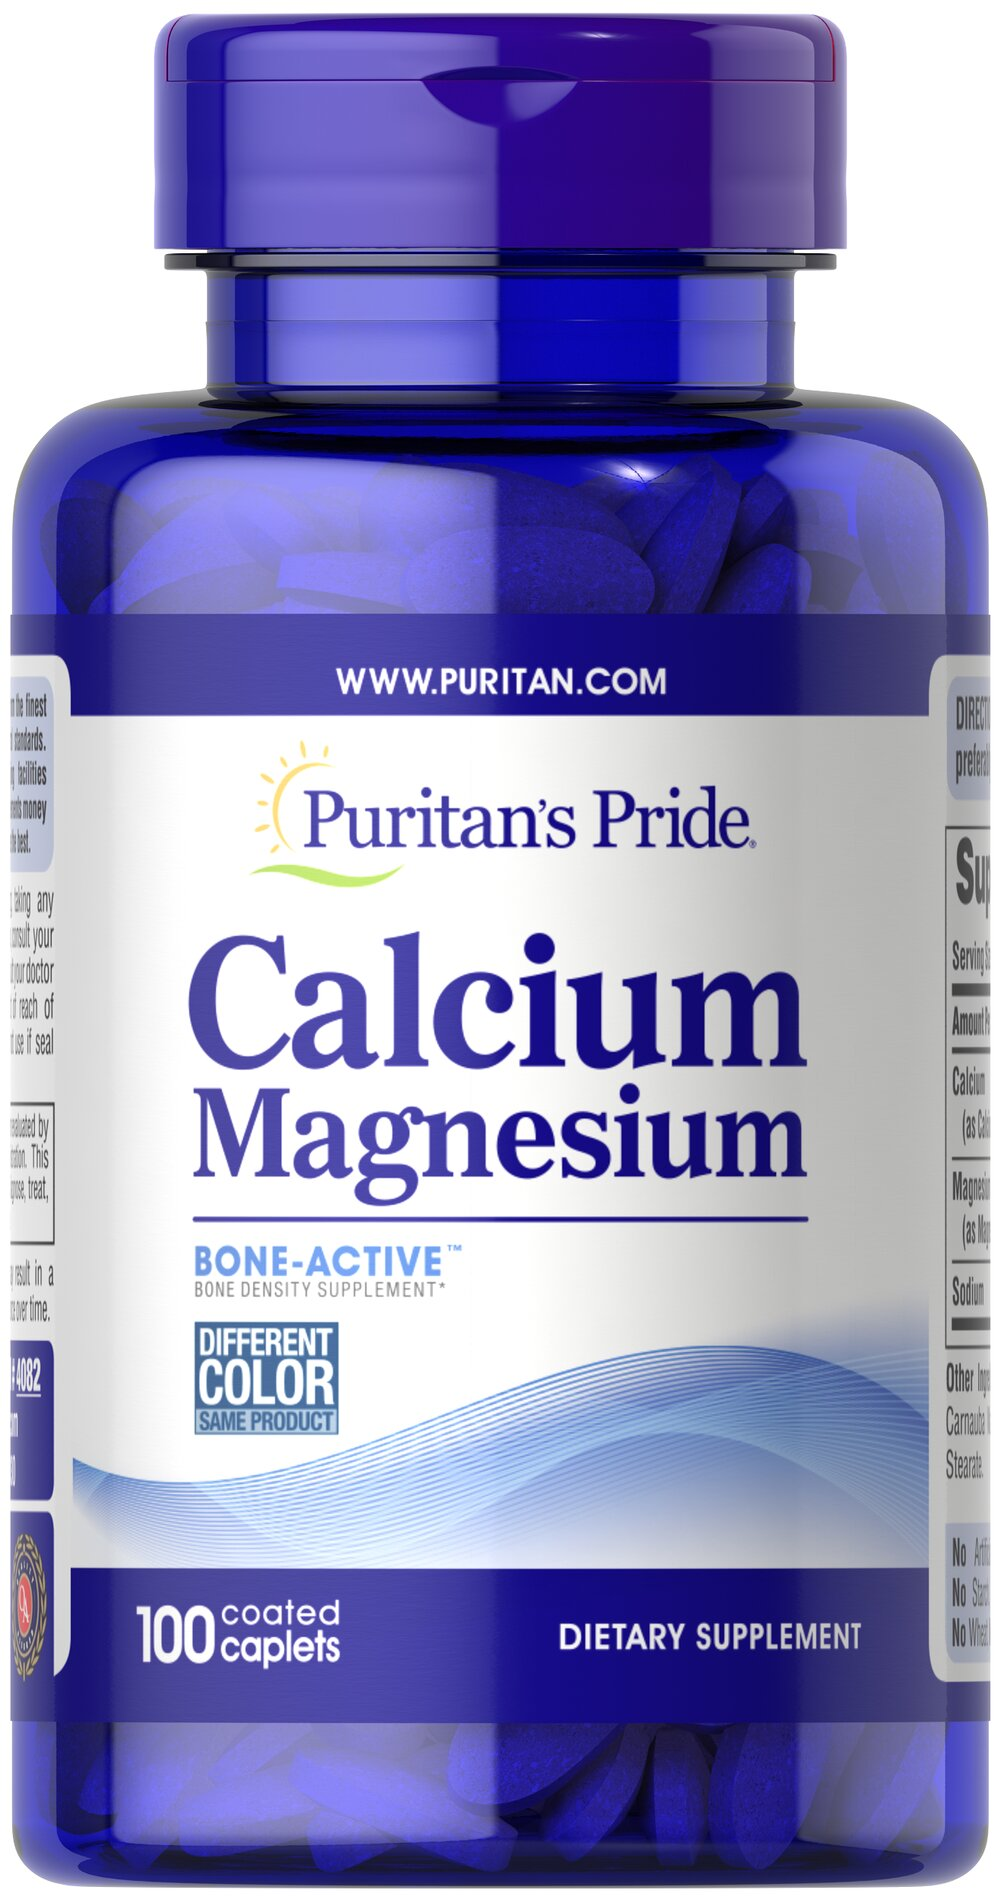 Calcium Magnesium Chelated <p>Looking for extra support for your bones?</p><p>Puritan's Pride offers a high quality Calcium and Magnesium supplement that delivers 500 mg Calcium and 250 mg Magnesium in a chelated form for optimal absorption.</p> 100 Caplets 500 mg/250 mg $9.99